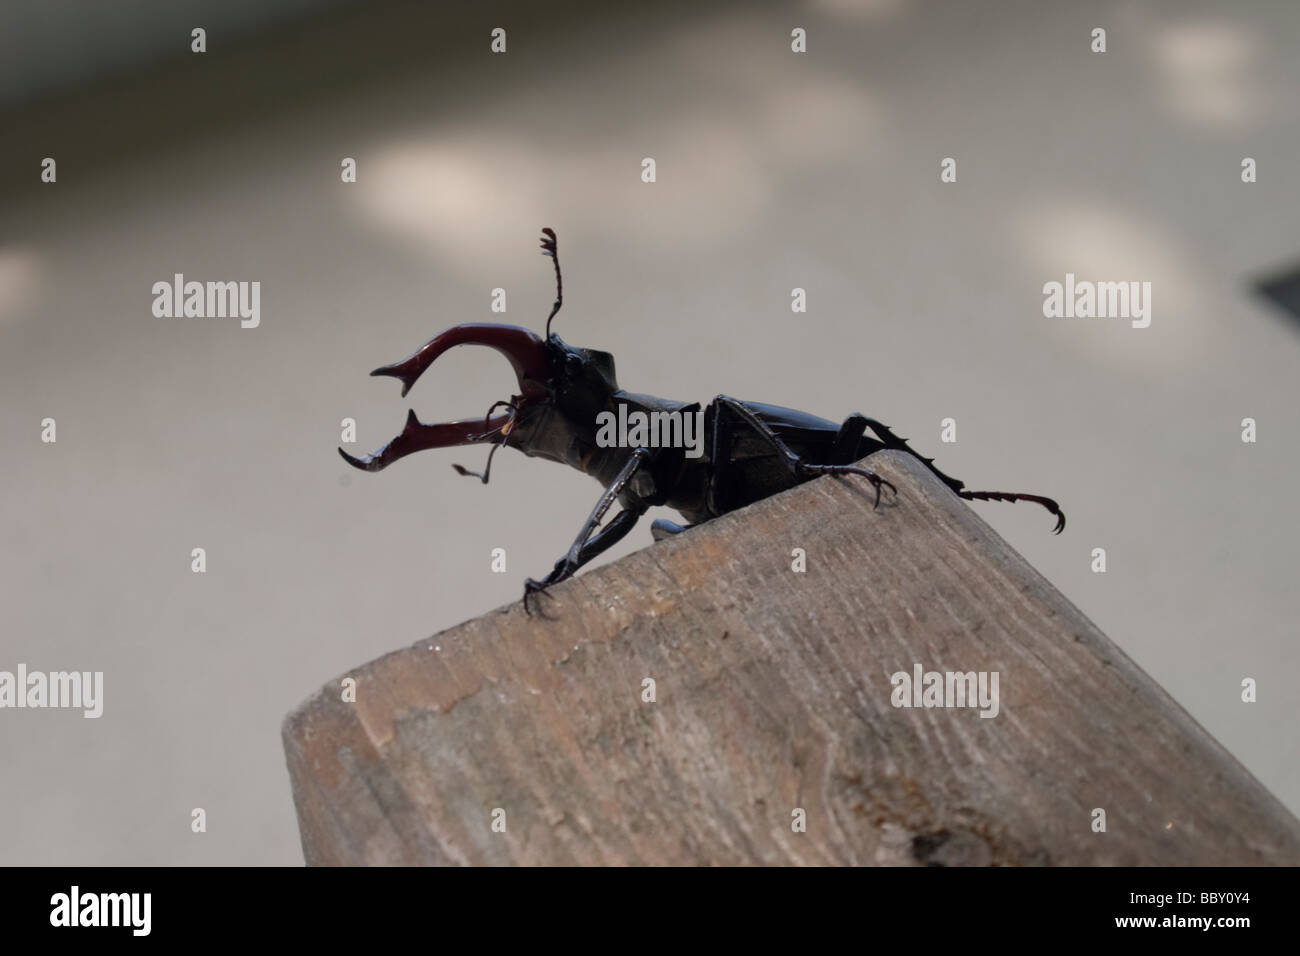 A male stag beetle in the garden - Stock Image